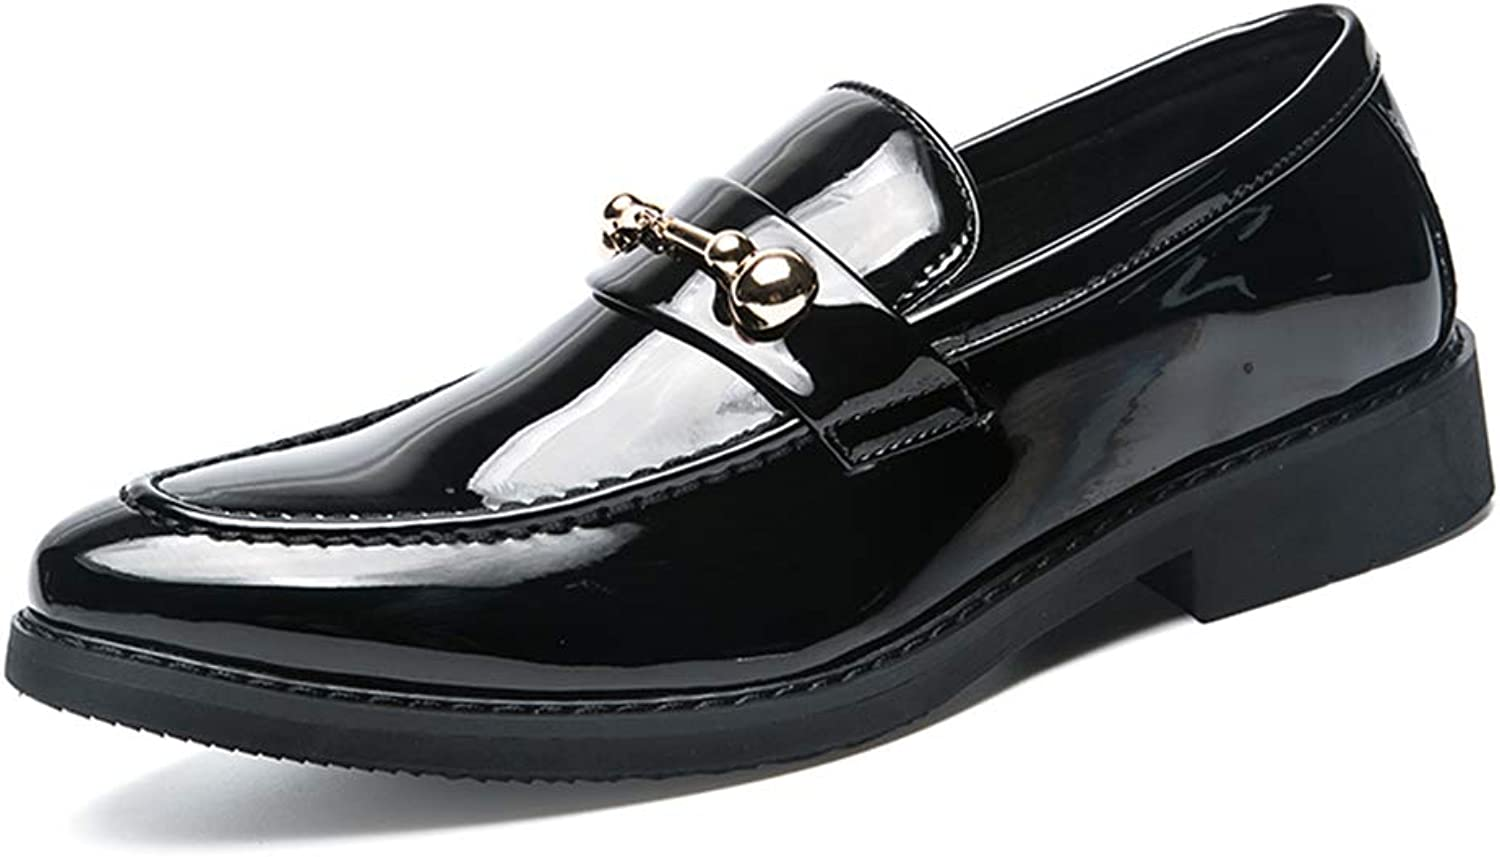 Men's Business Oxford Casual Personality Convenient Patent Leather Slip On Leisure shoes Cricket shoes